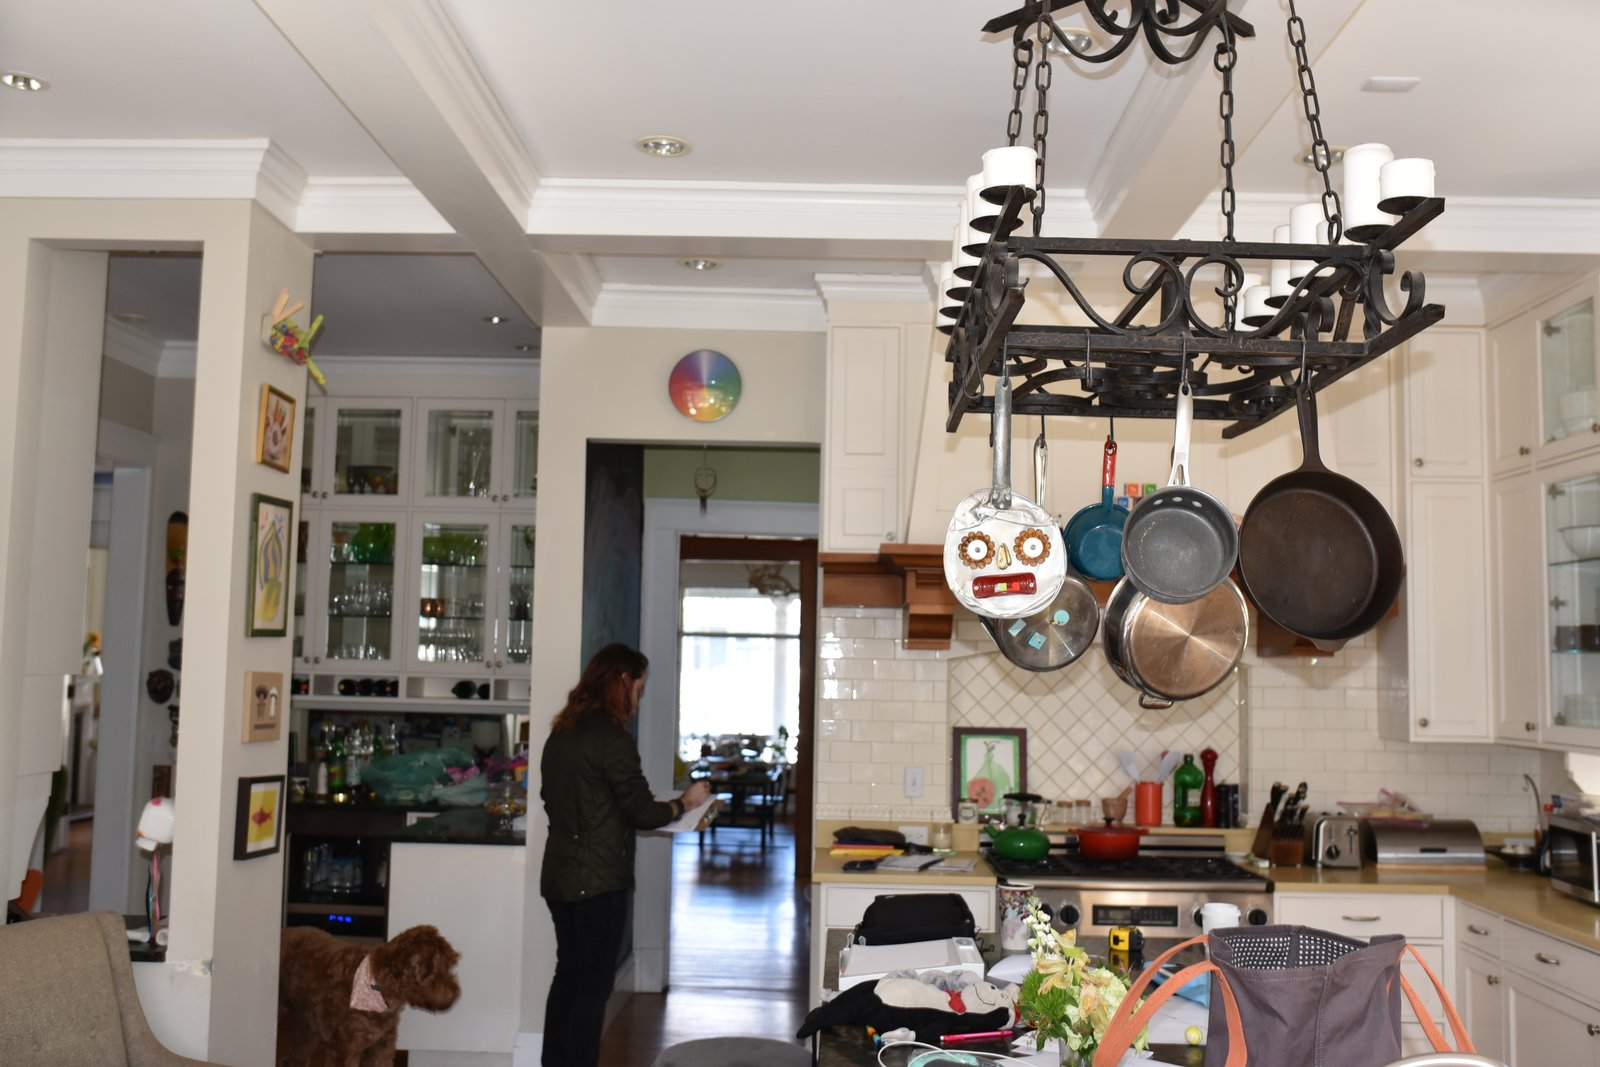 Before & After: A Remodeled Chicago Kitchen Channels the Owners' Commitment to the Arts